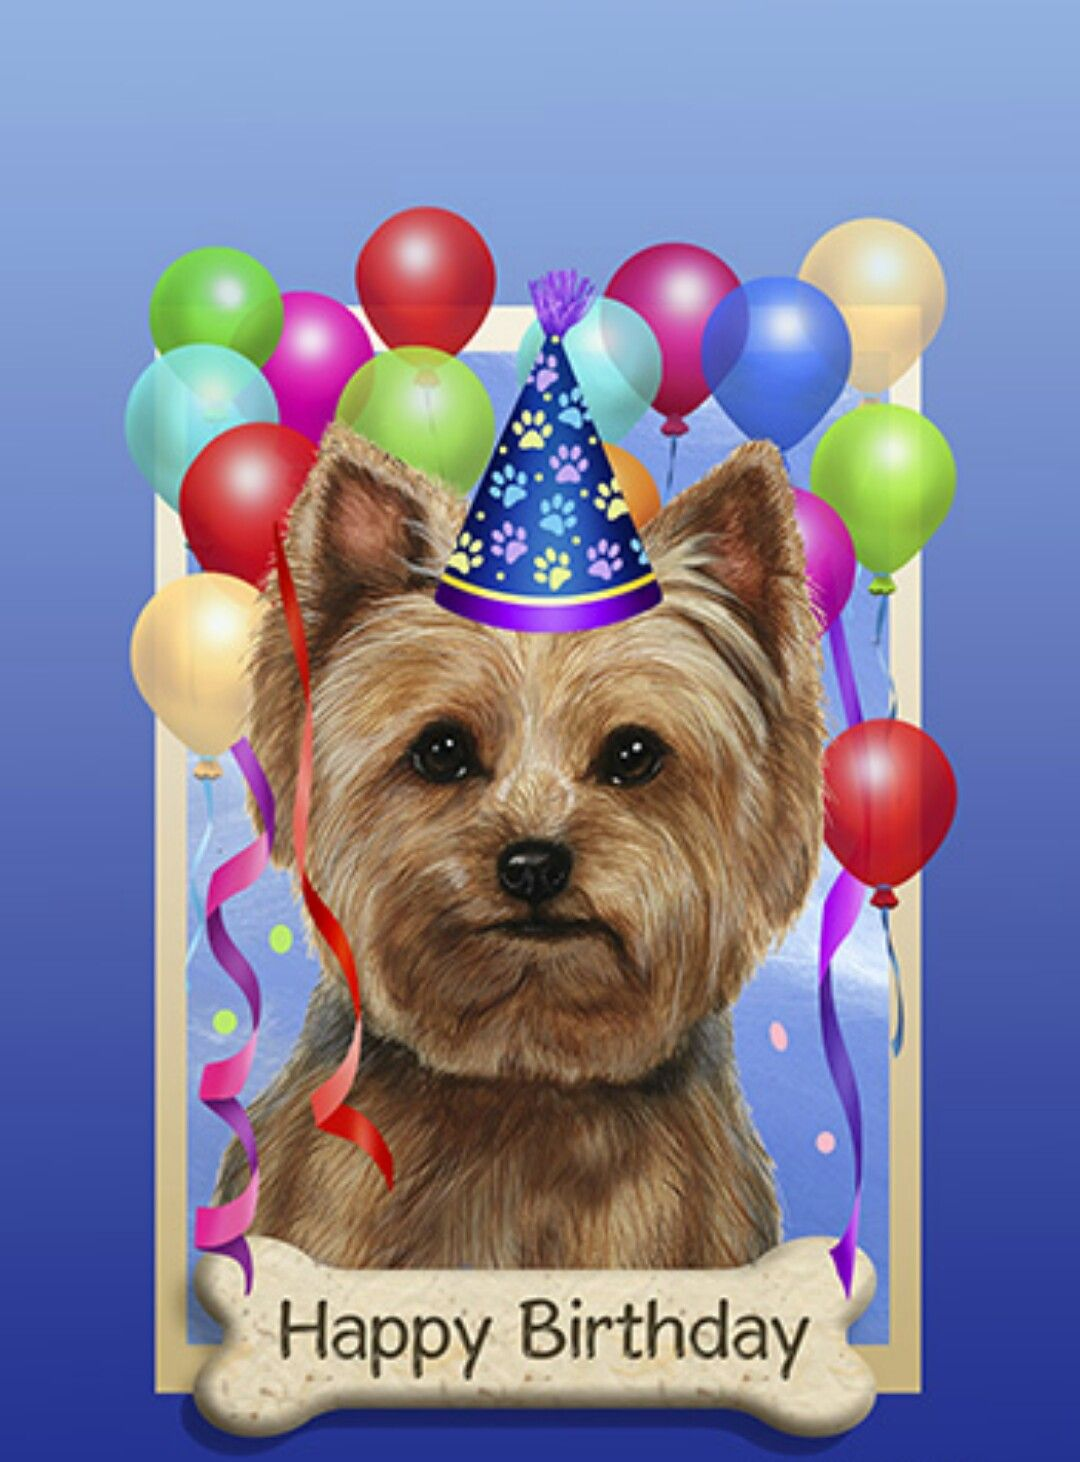 10 Signs That Your Dog Is Happy Happy Birthday Illustration Happy Birthday Images Birthday Images